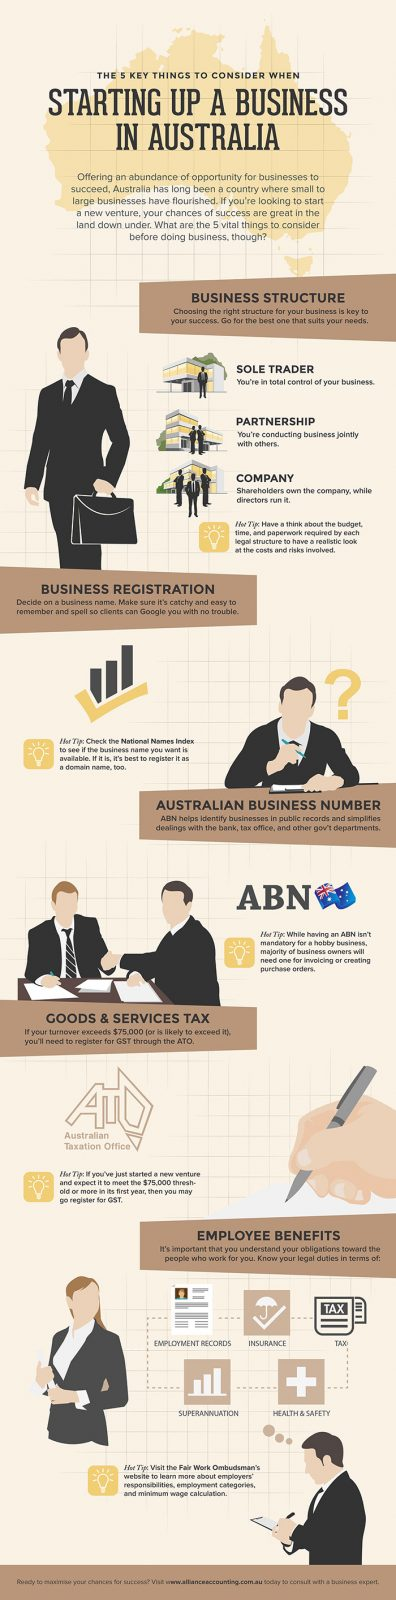 Infographic Gallery Test - Melbourne SEO Services